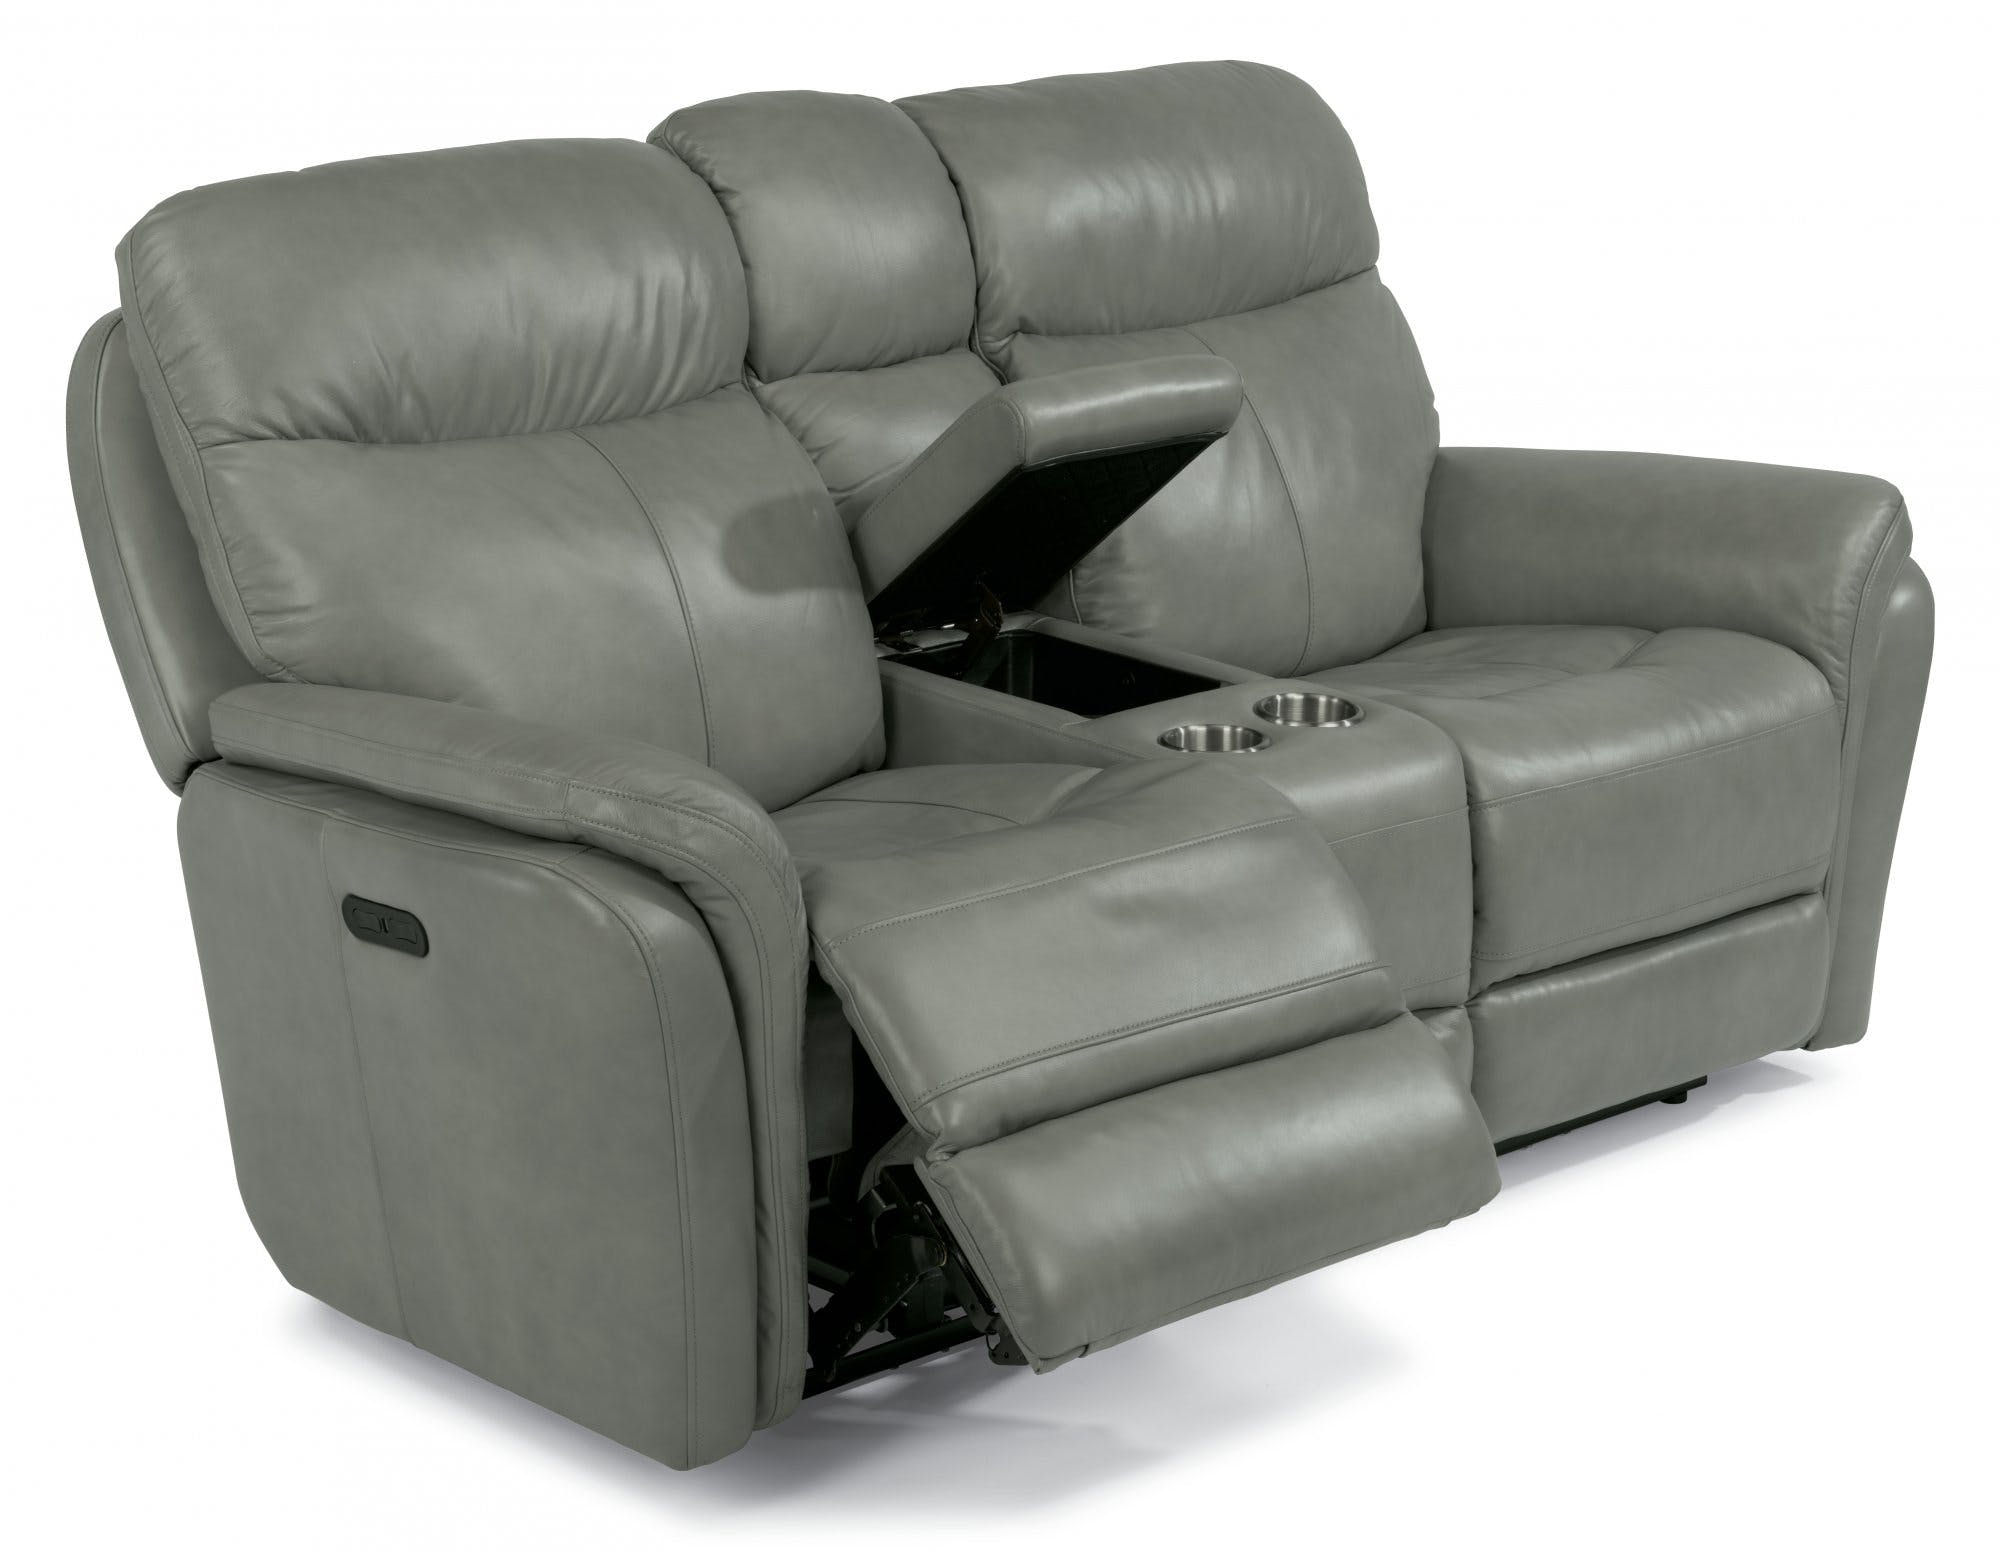 Flexsteel Leather Power Reclining Loveseat